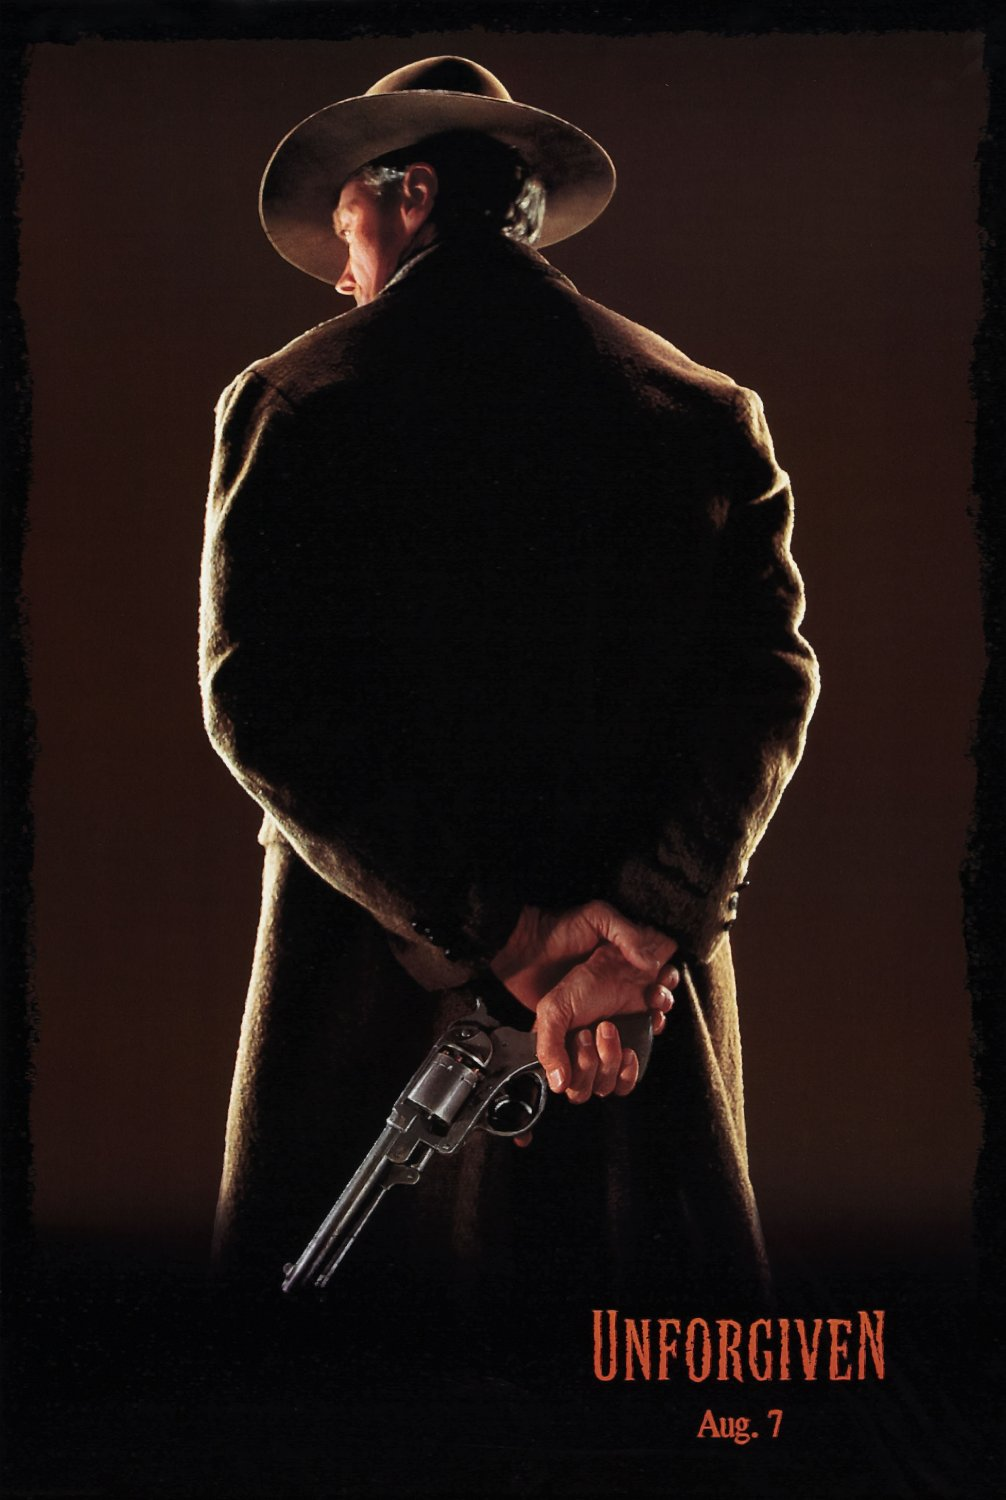 Puss In Boots Wallpaper Hd Unforgiven 1 Of 3 Extra Large Movie Poster Image Imp